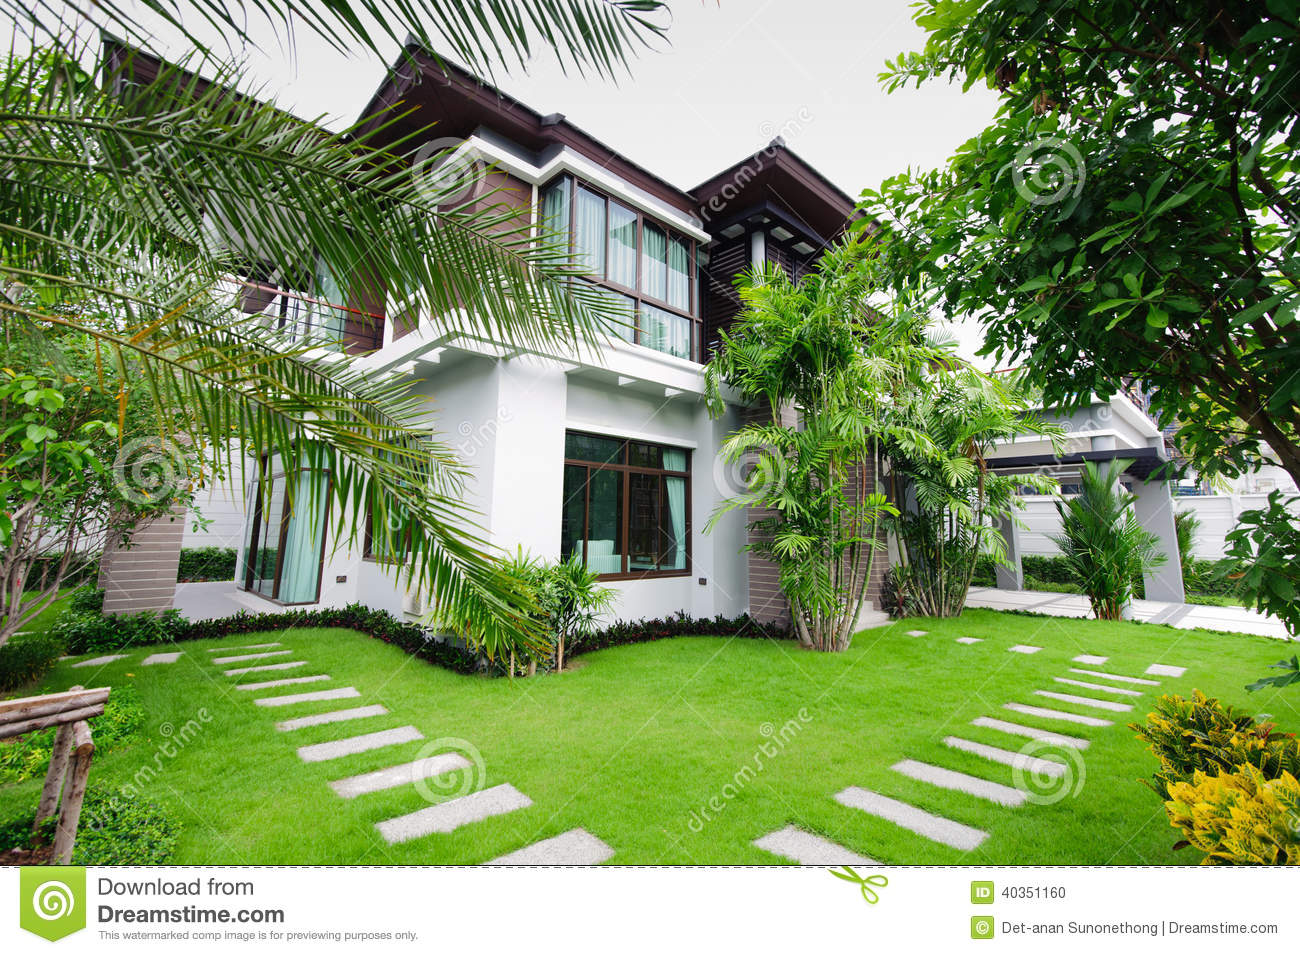 Maison moderne dans le jardin photo stock image 40351160 for Le jardin moderne